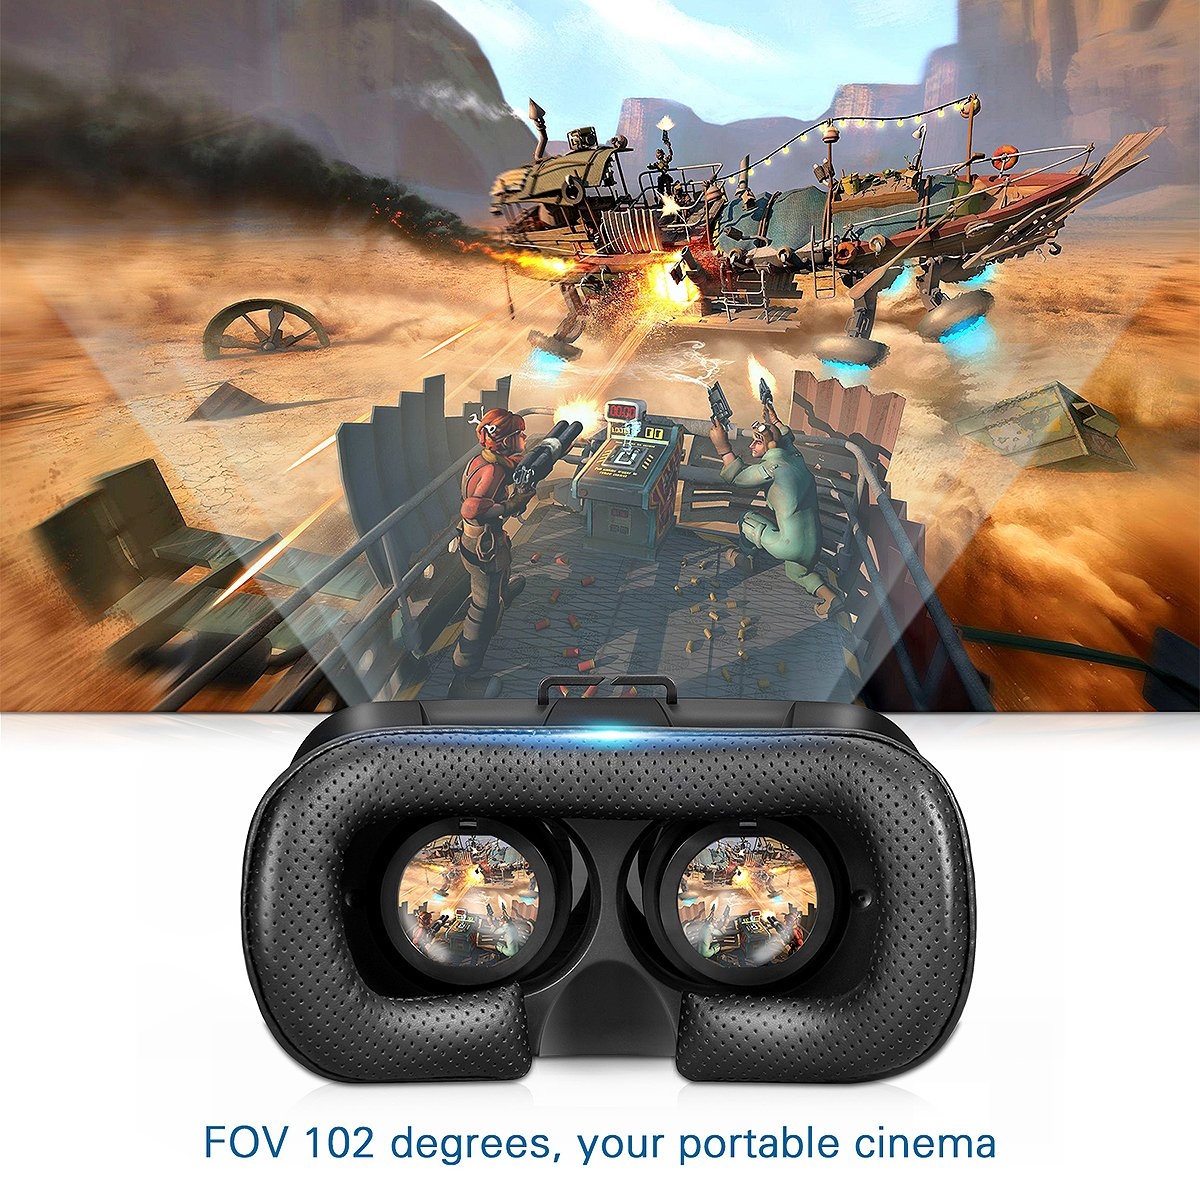 VR Headset, Canbor VR Goggles Virtual Reality Headset VR Glasses for 3D Video Movies Games for Apple iPhone, Samsung Huwei HTC More Smartphones by Canbor (Image #4)